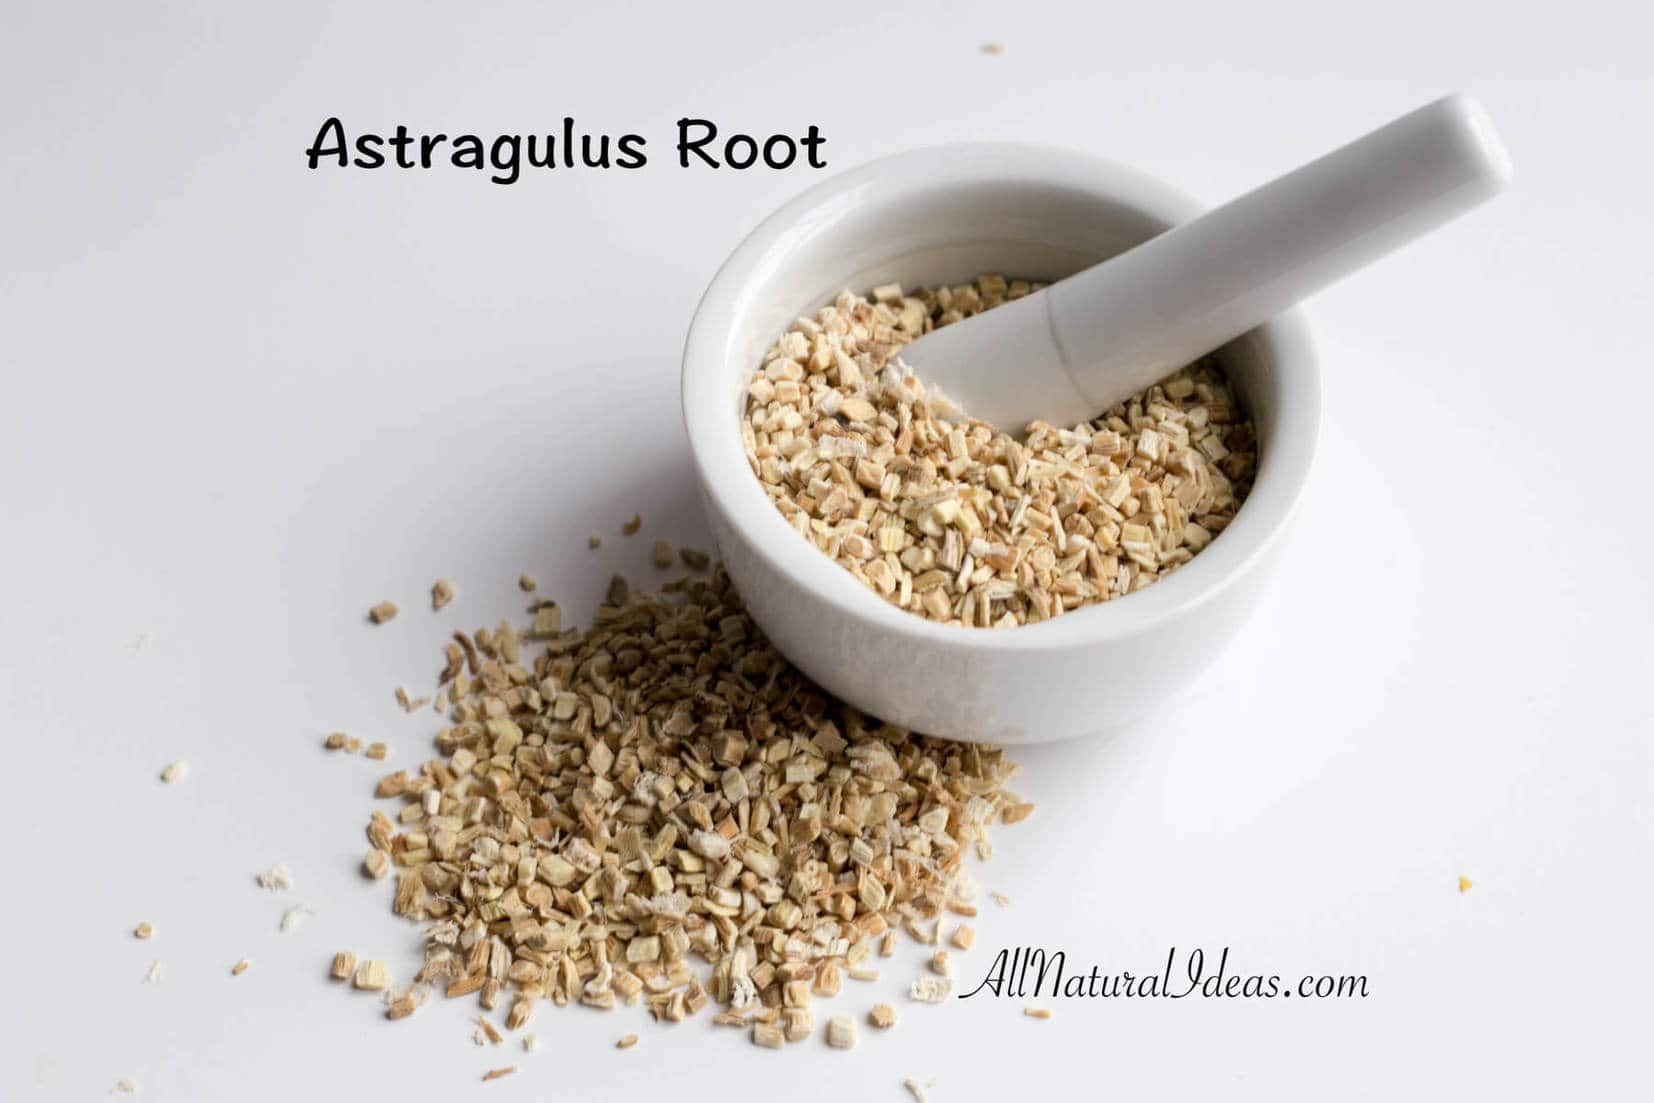 Astragalus root: a natural immune system booster